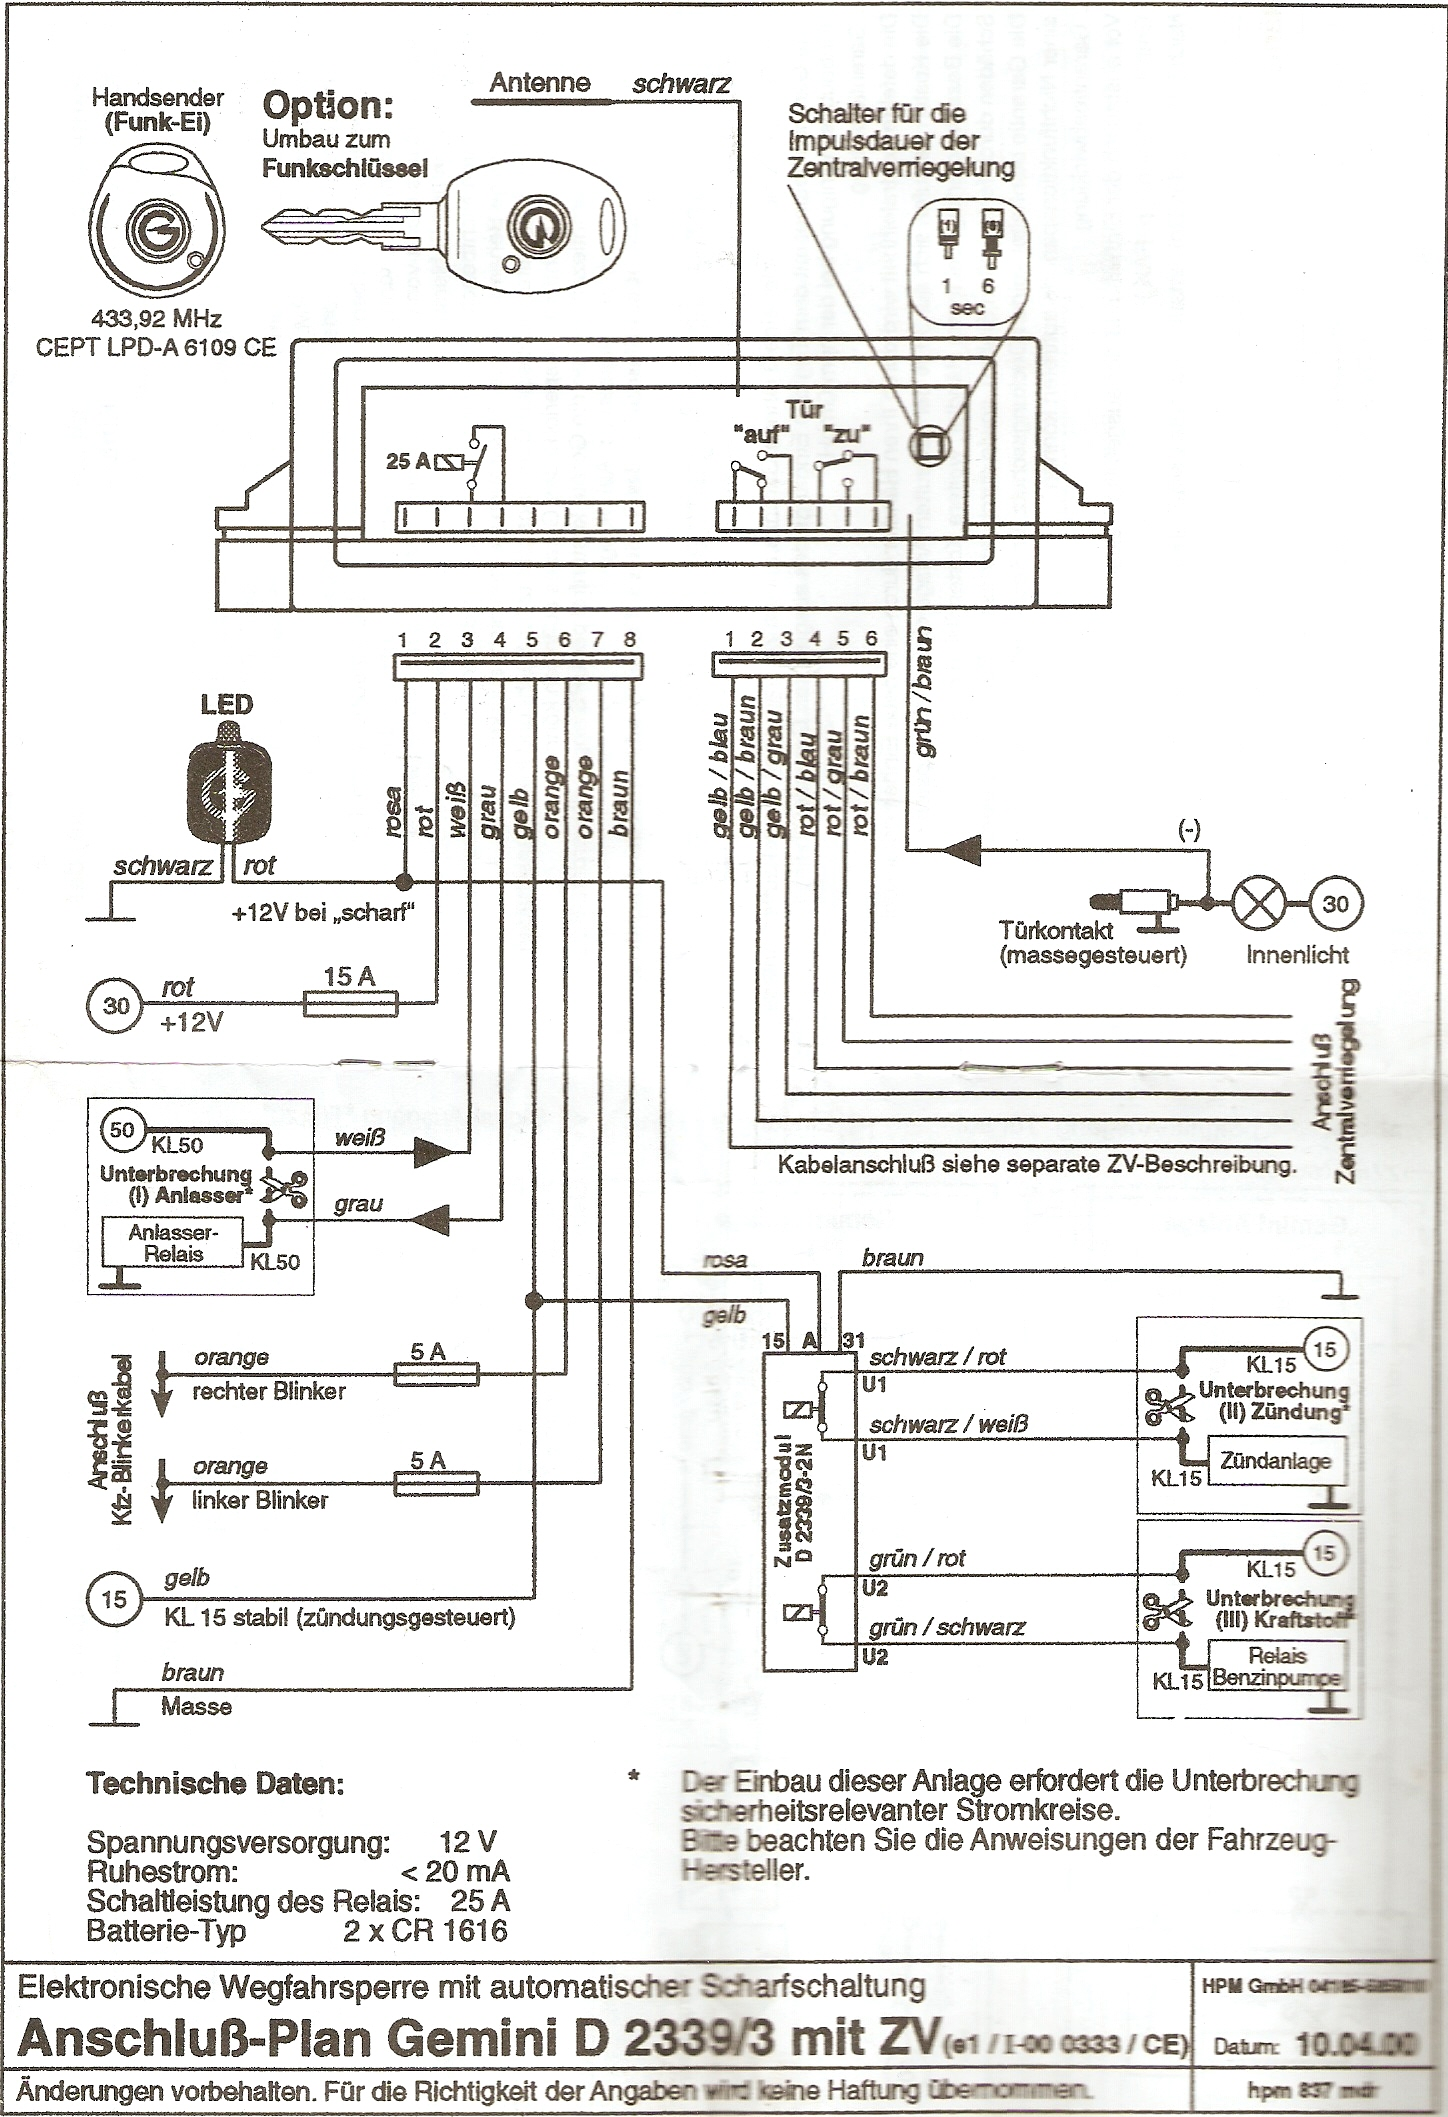 ready remote vehicle wiring diagram 2006 hummer h3 parts diagrams home car auto security and starter install bmw e46 start schematic